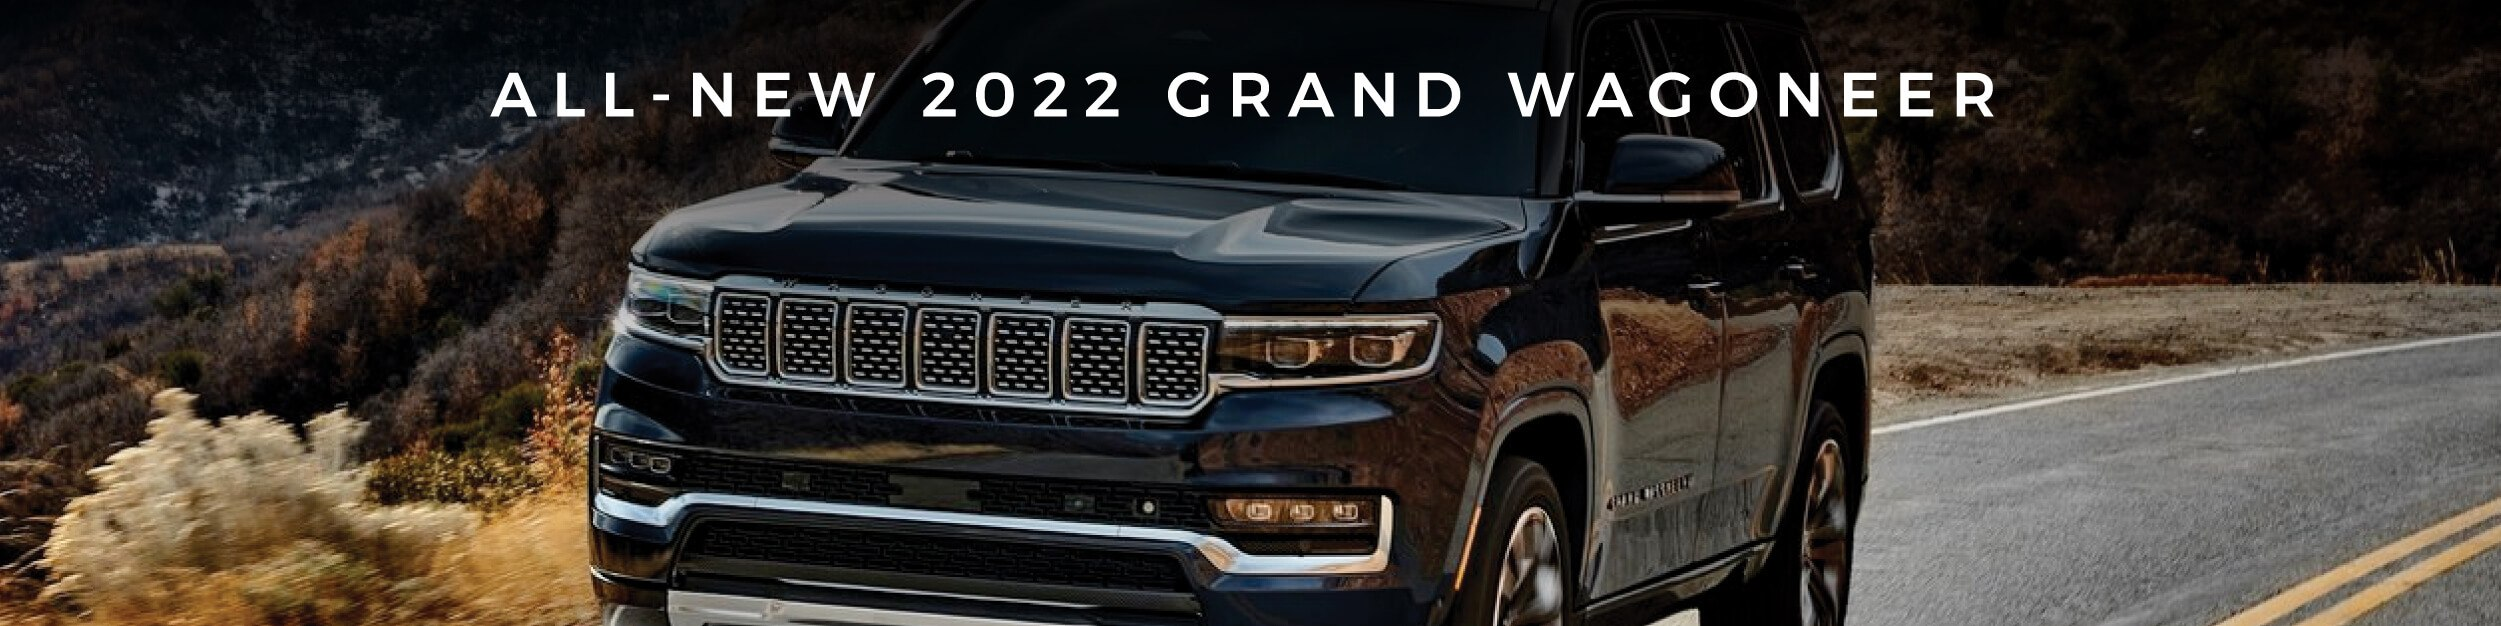 The All-New 2022 Jeep Grand Wagoneer